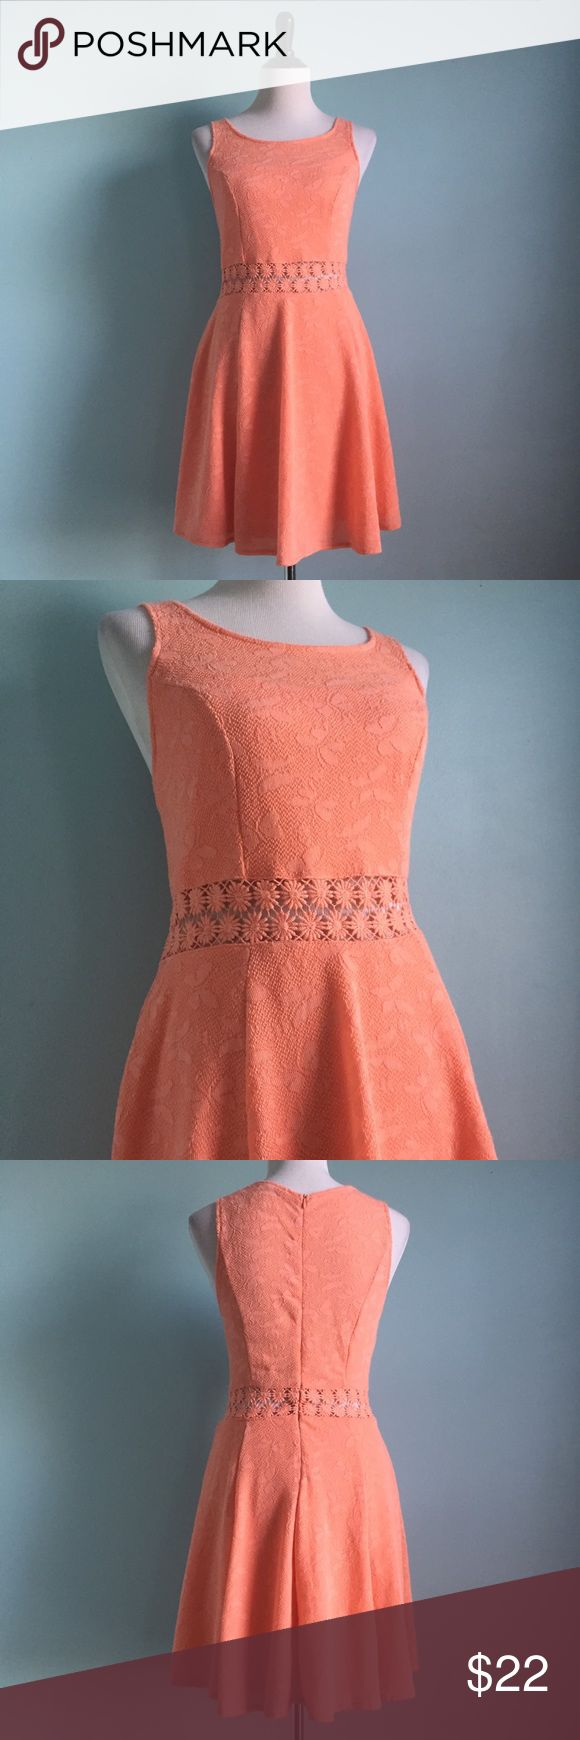 Peach Lacey Crochet Skater Dress Cute and comfortable peach lace dress with crochet floral midriff. Stretchy with zipper in back. Sleeveless Skater Dress. Fit & flare. Size juniors large by American Rag. In great condition! American Rag Dresses